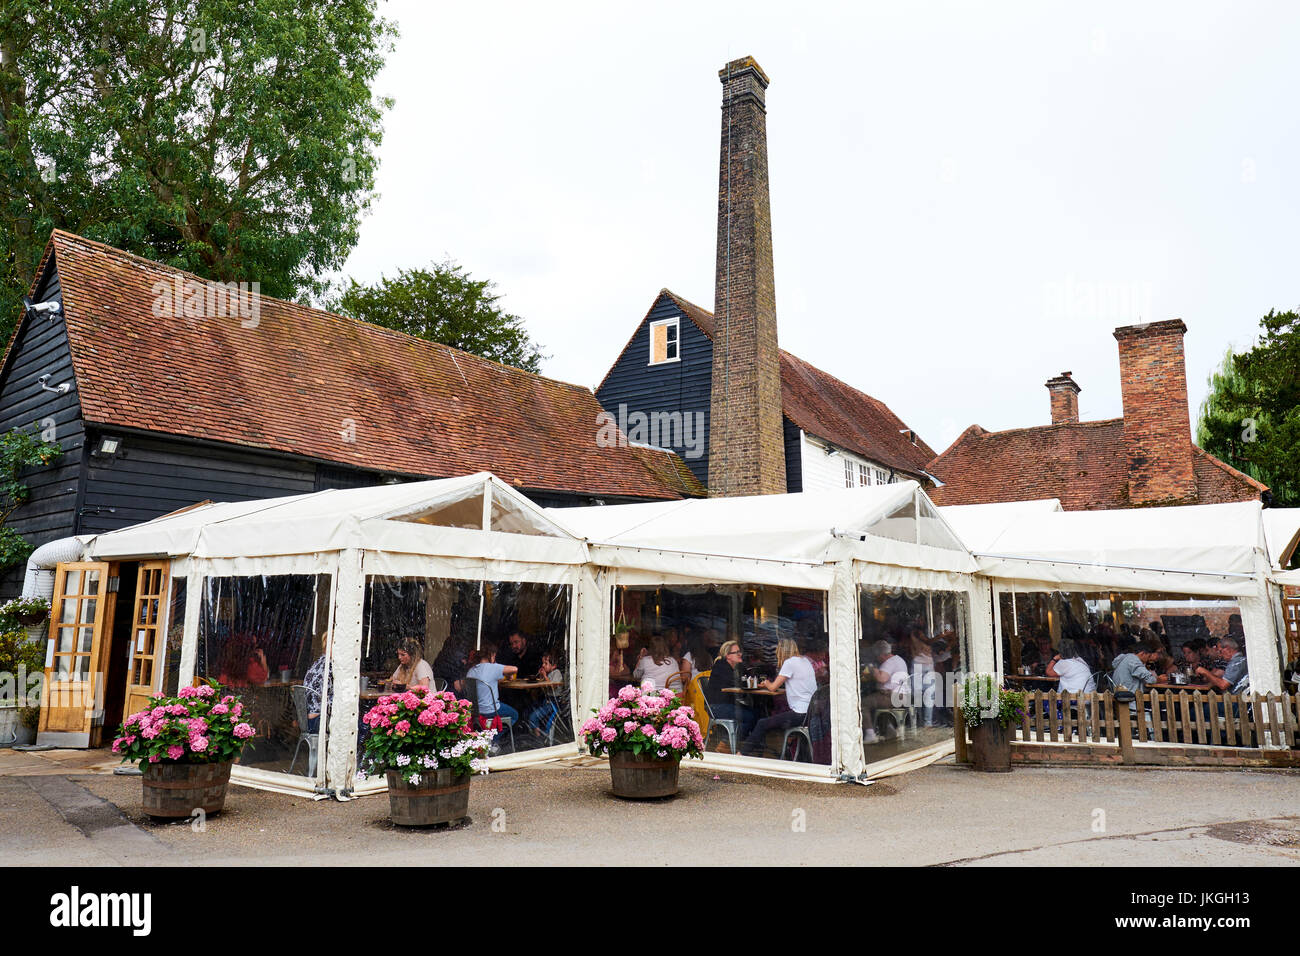 The Waffle House A Former 16th Century Watermill St Michaels Street Stock Photo Alamy